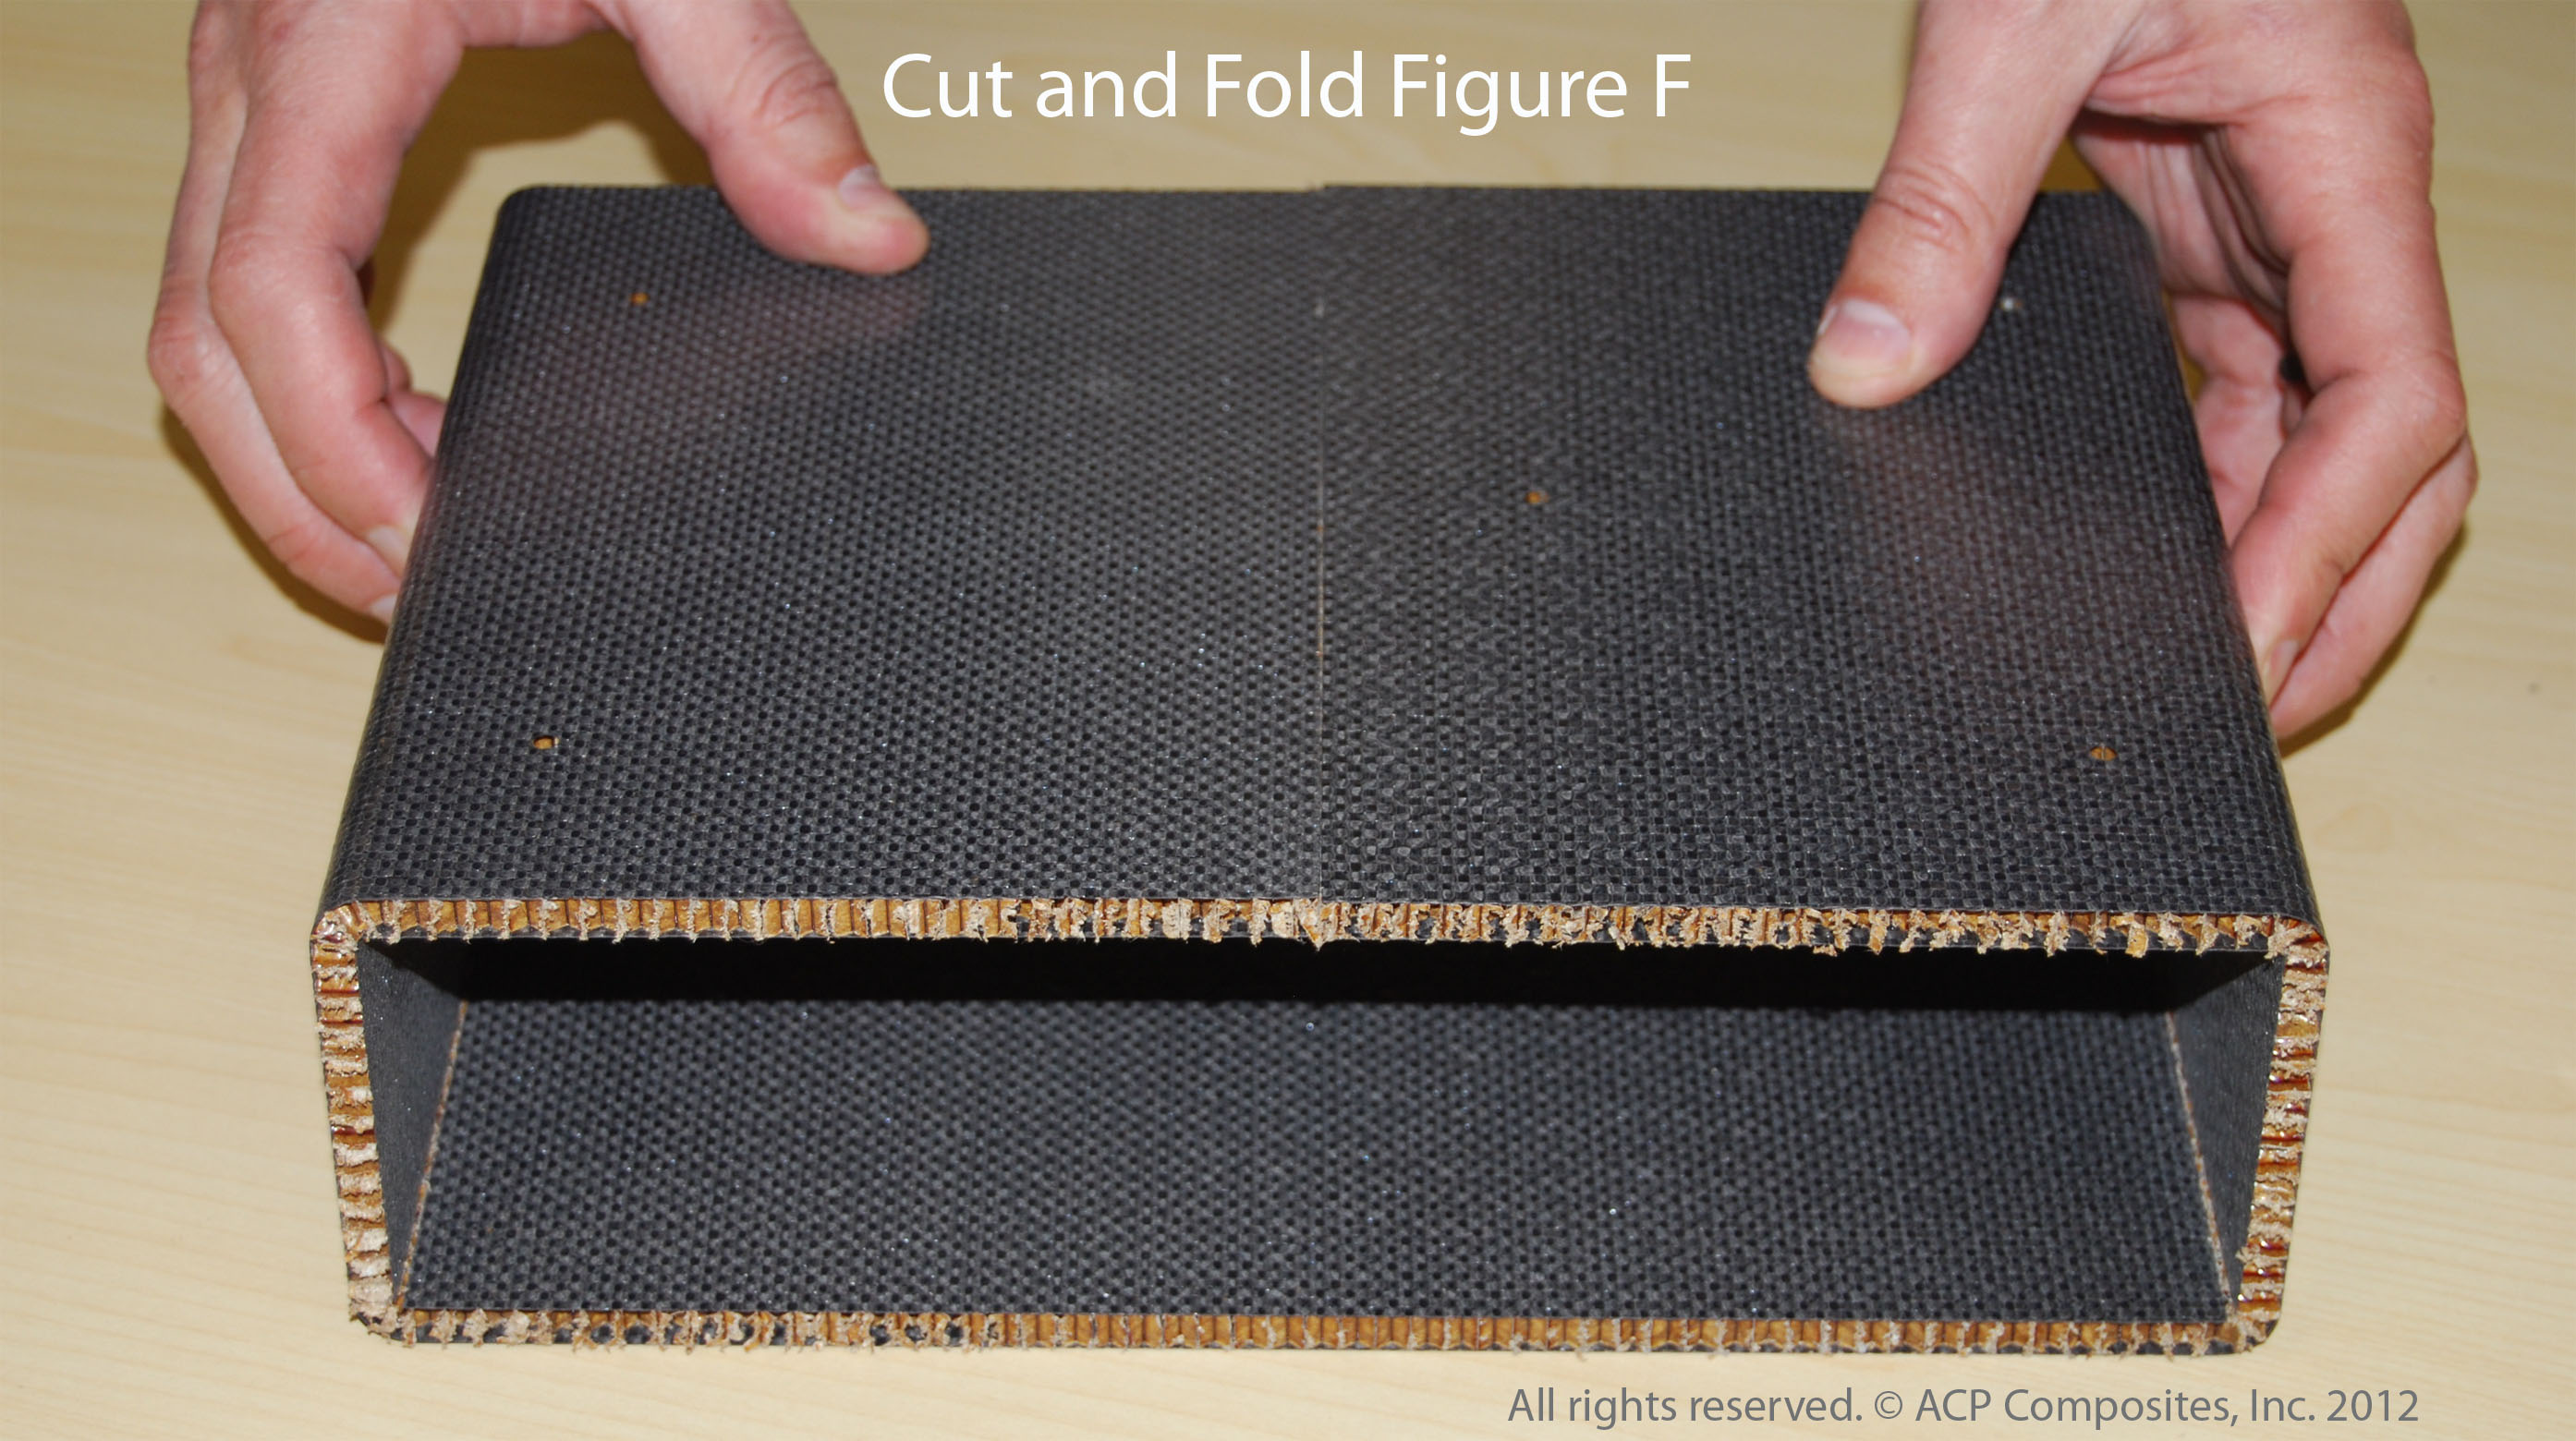 Cut and Fold Figure F